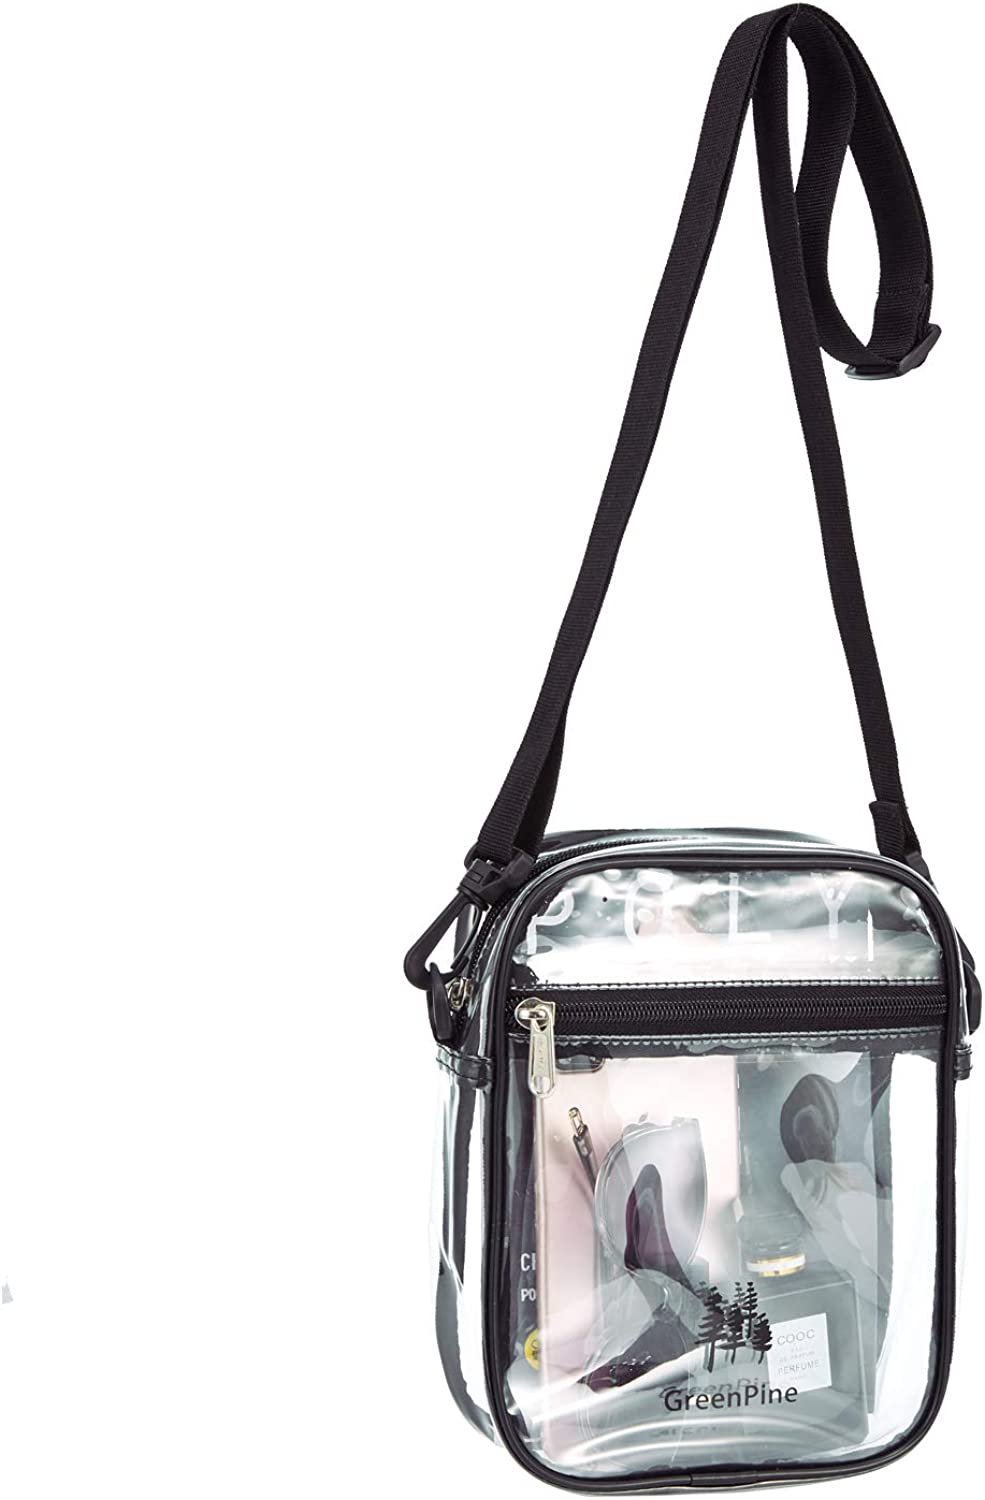 Premium Clear Bag Clear Tote Bag with Cross Body Messenger Adjustable Shoulder Strap for Women and Men